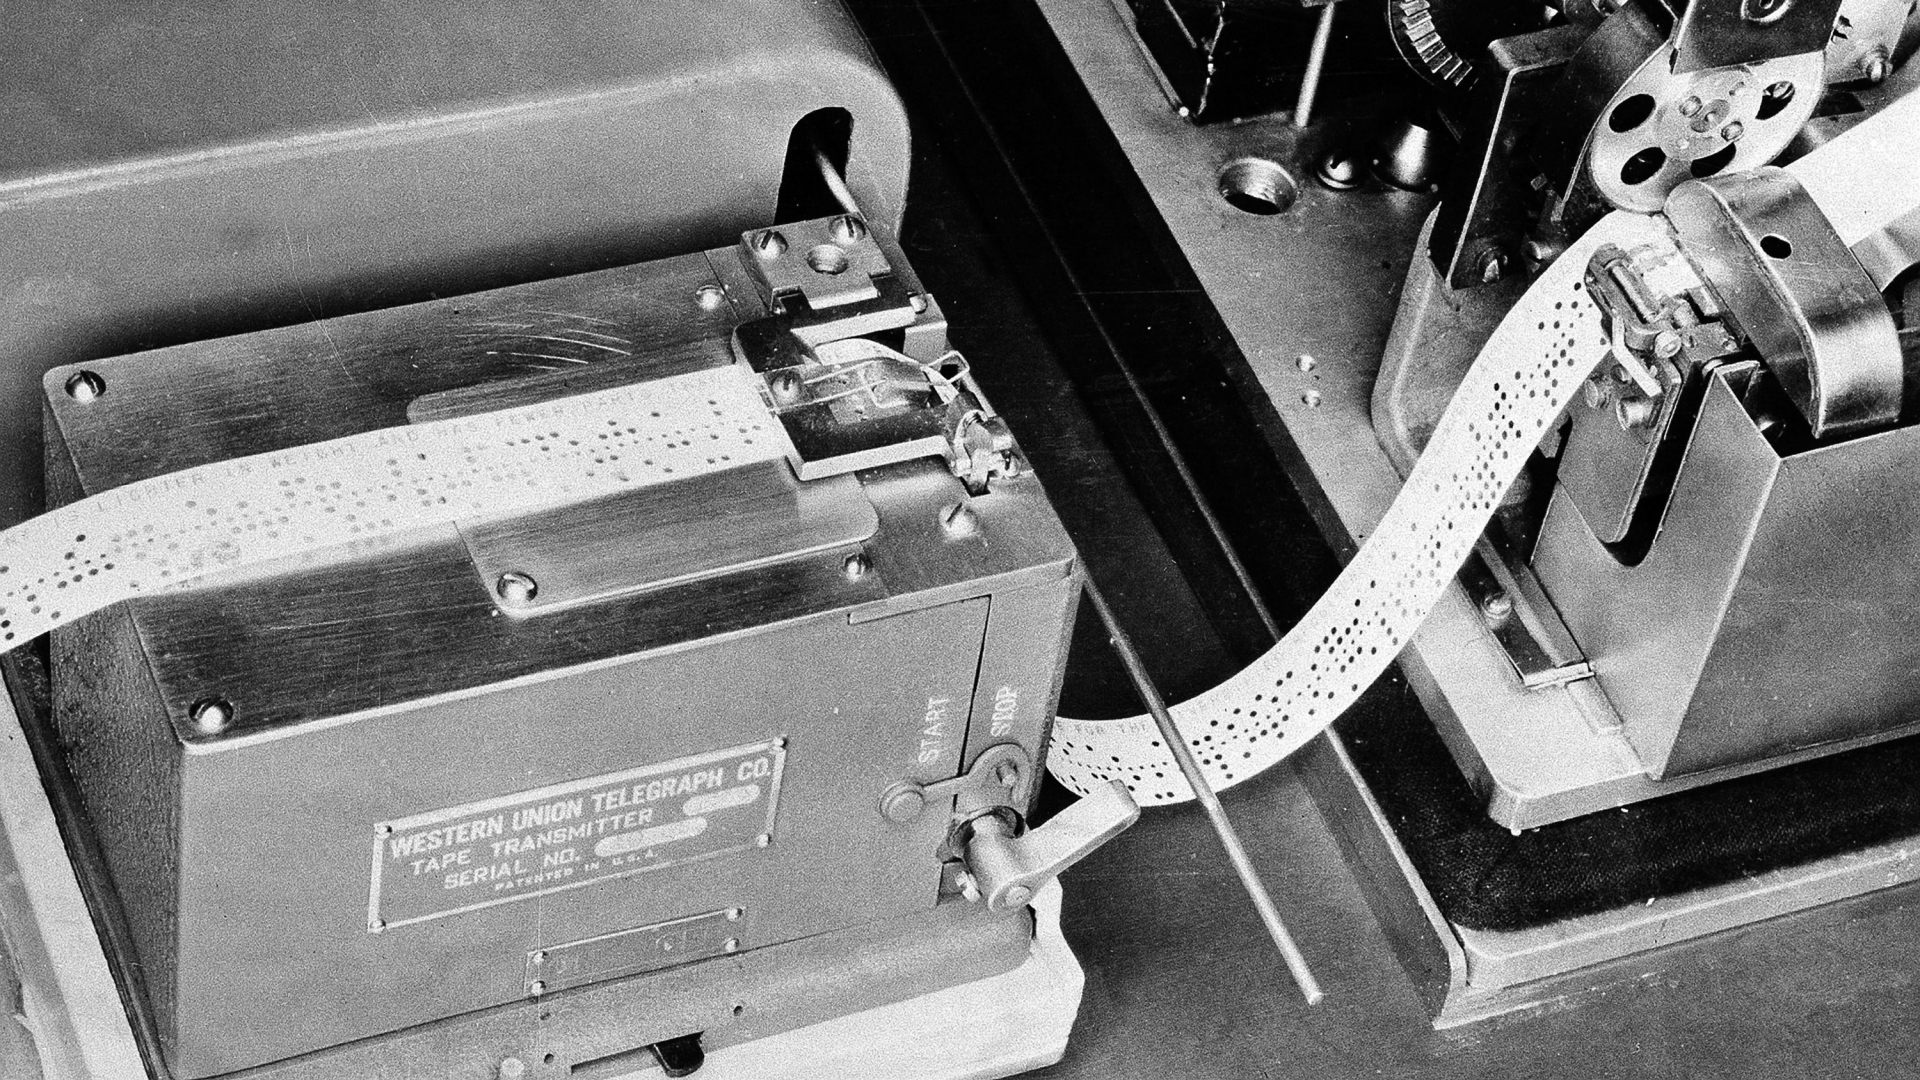 A 1944 photo of the device used by Western Union which translates a telegram into holes on a tape, and then passes it along to the box-like apparatus. (Credit: AP Photo)